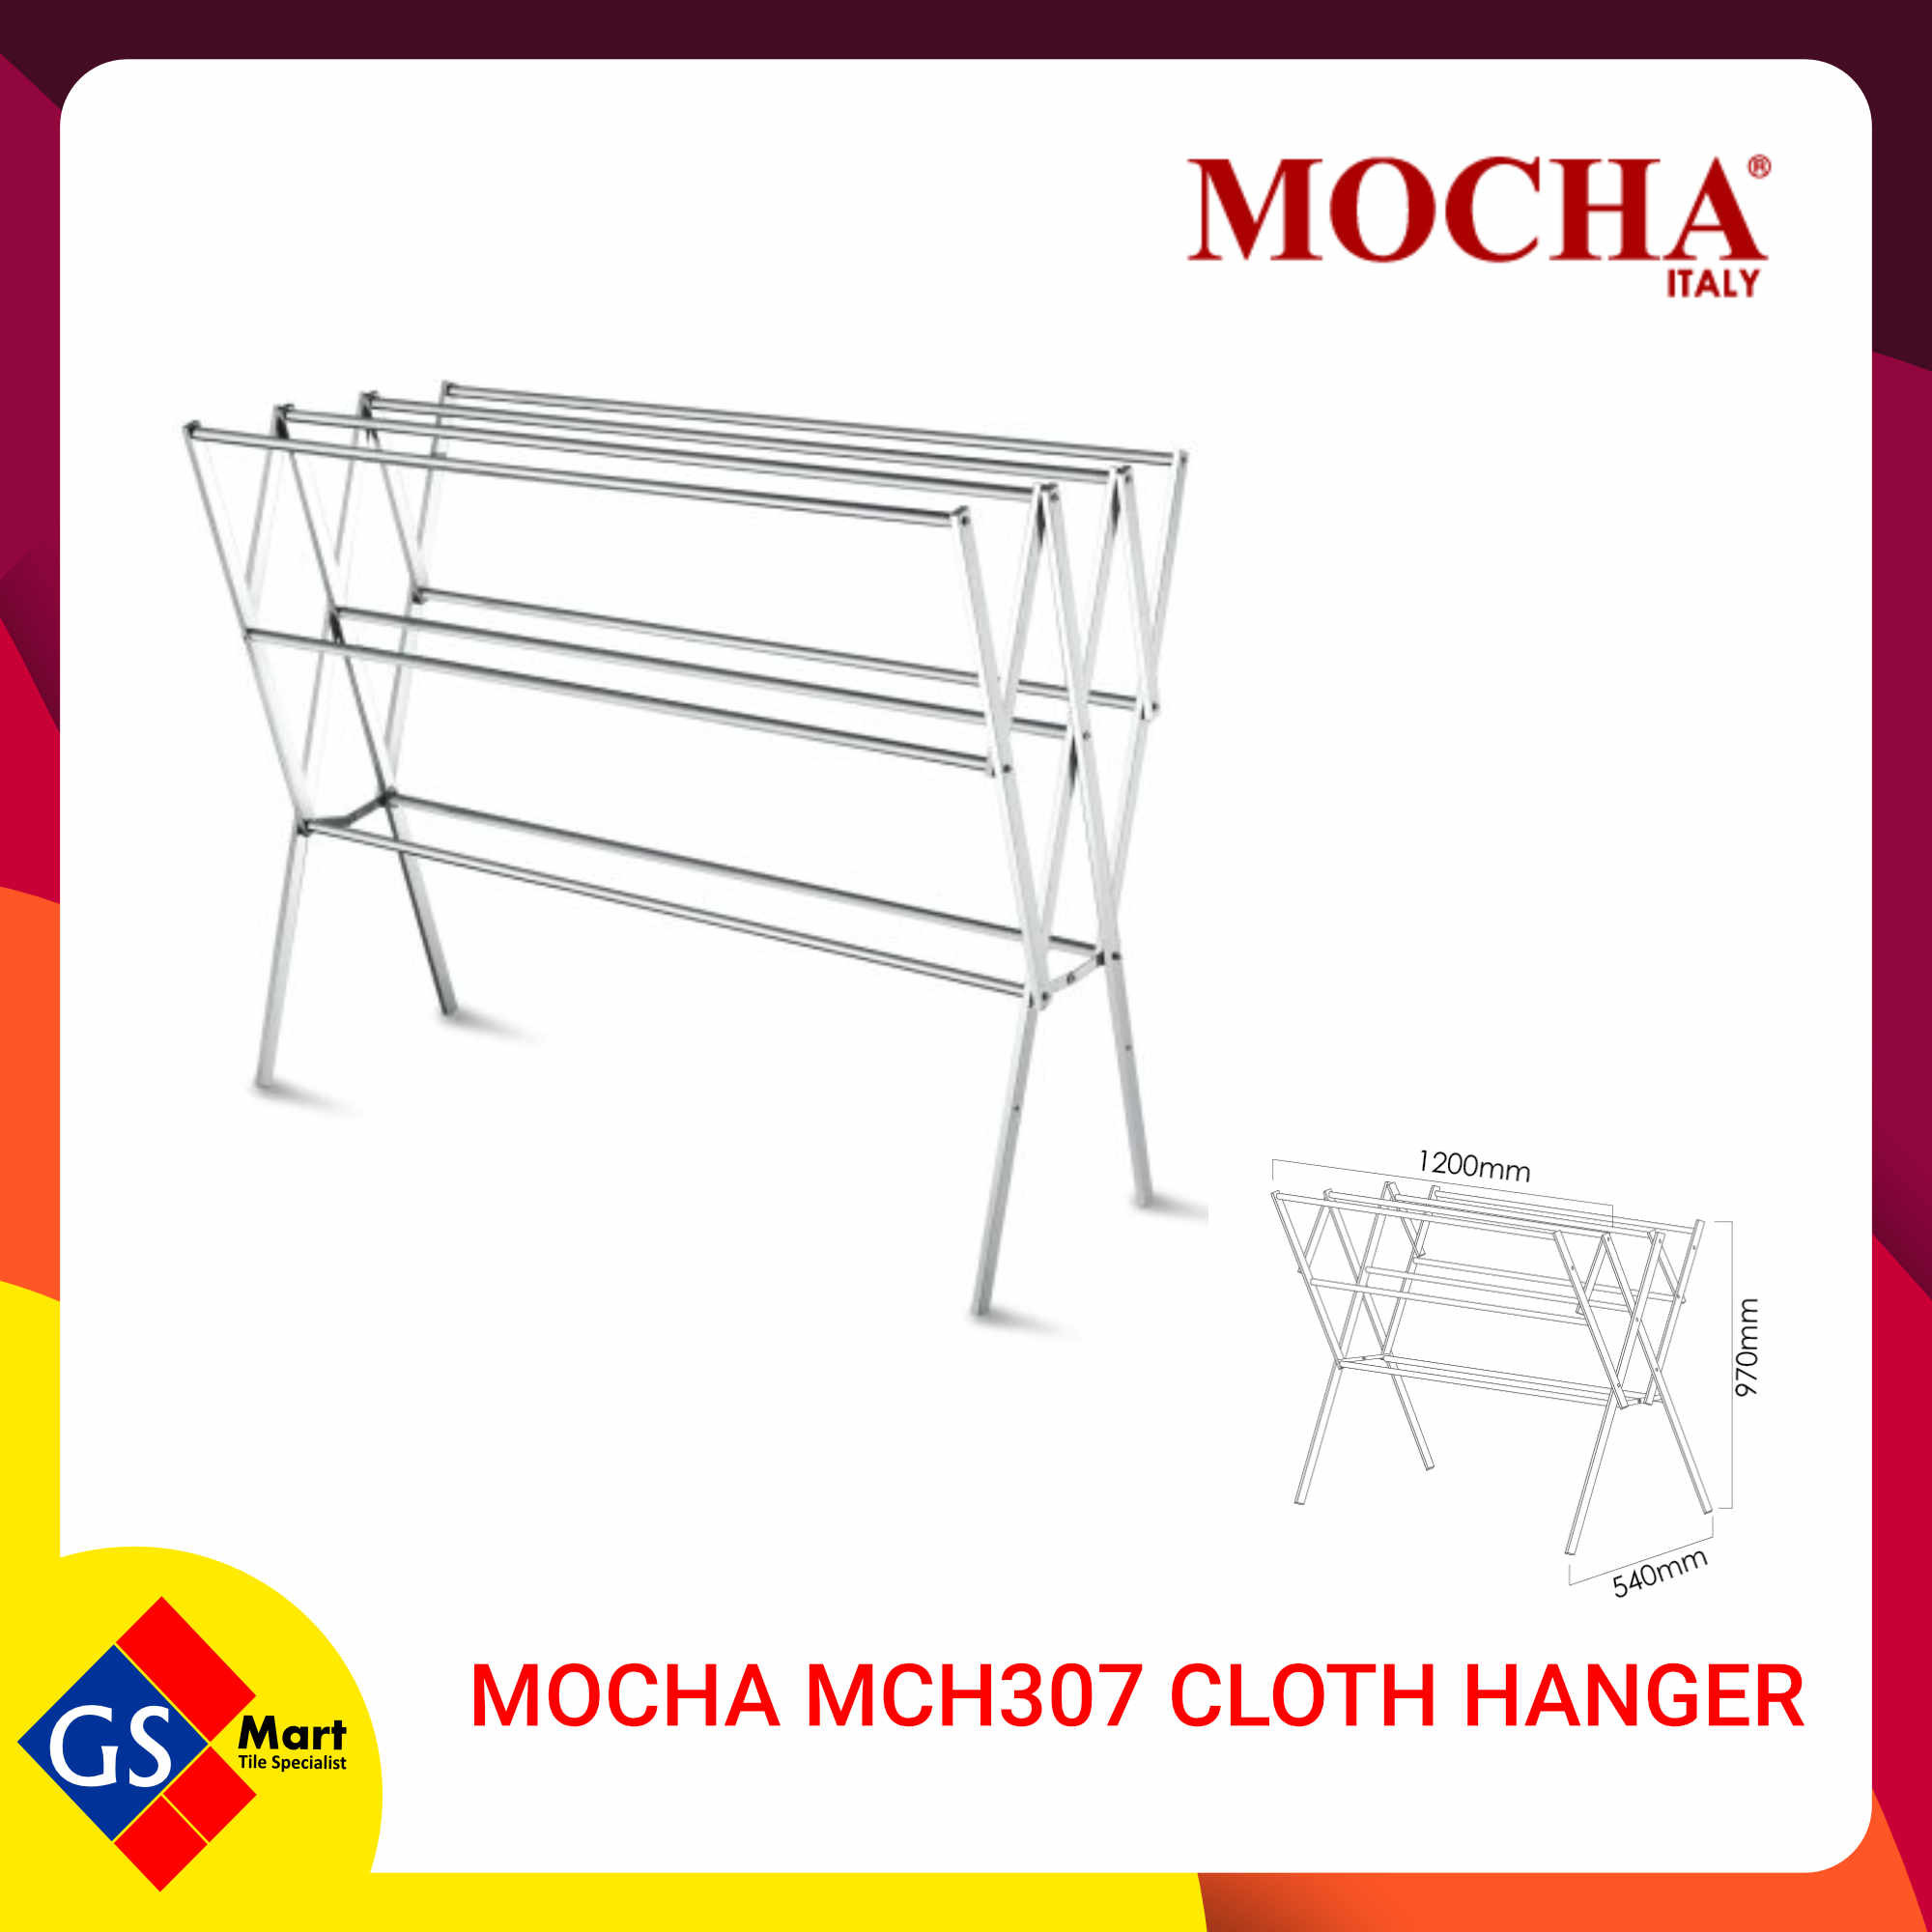 MOCHA MCH307 CLOTH HANGER